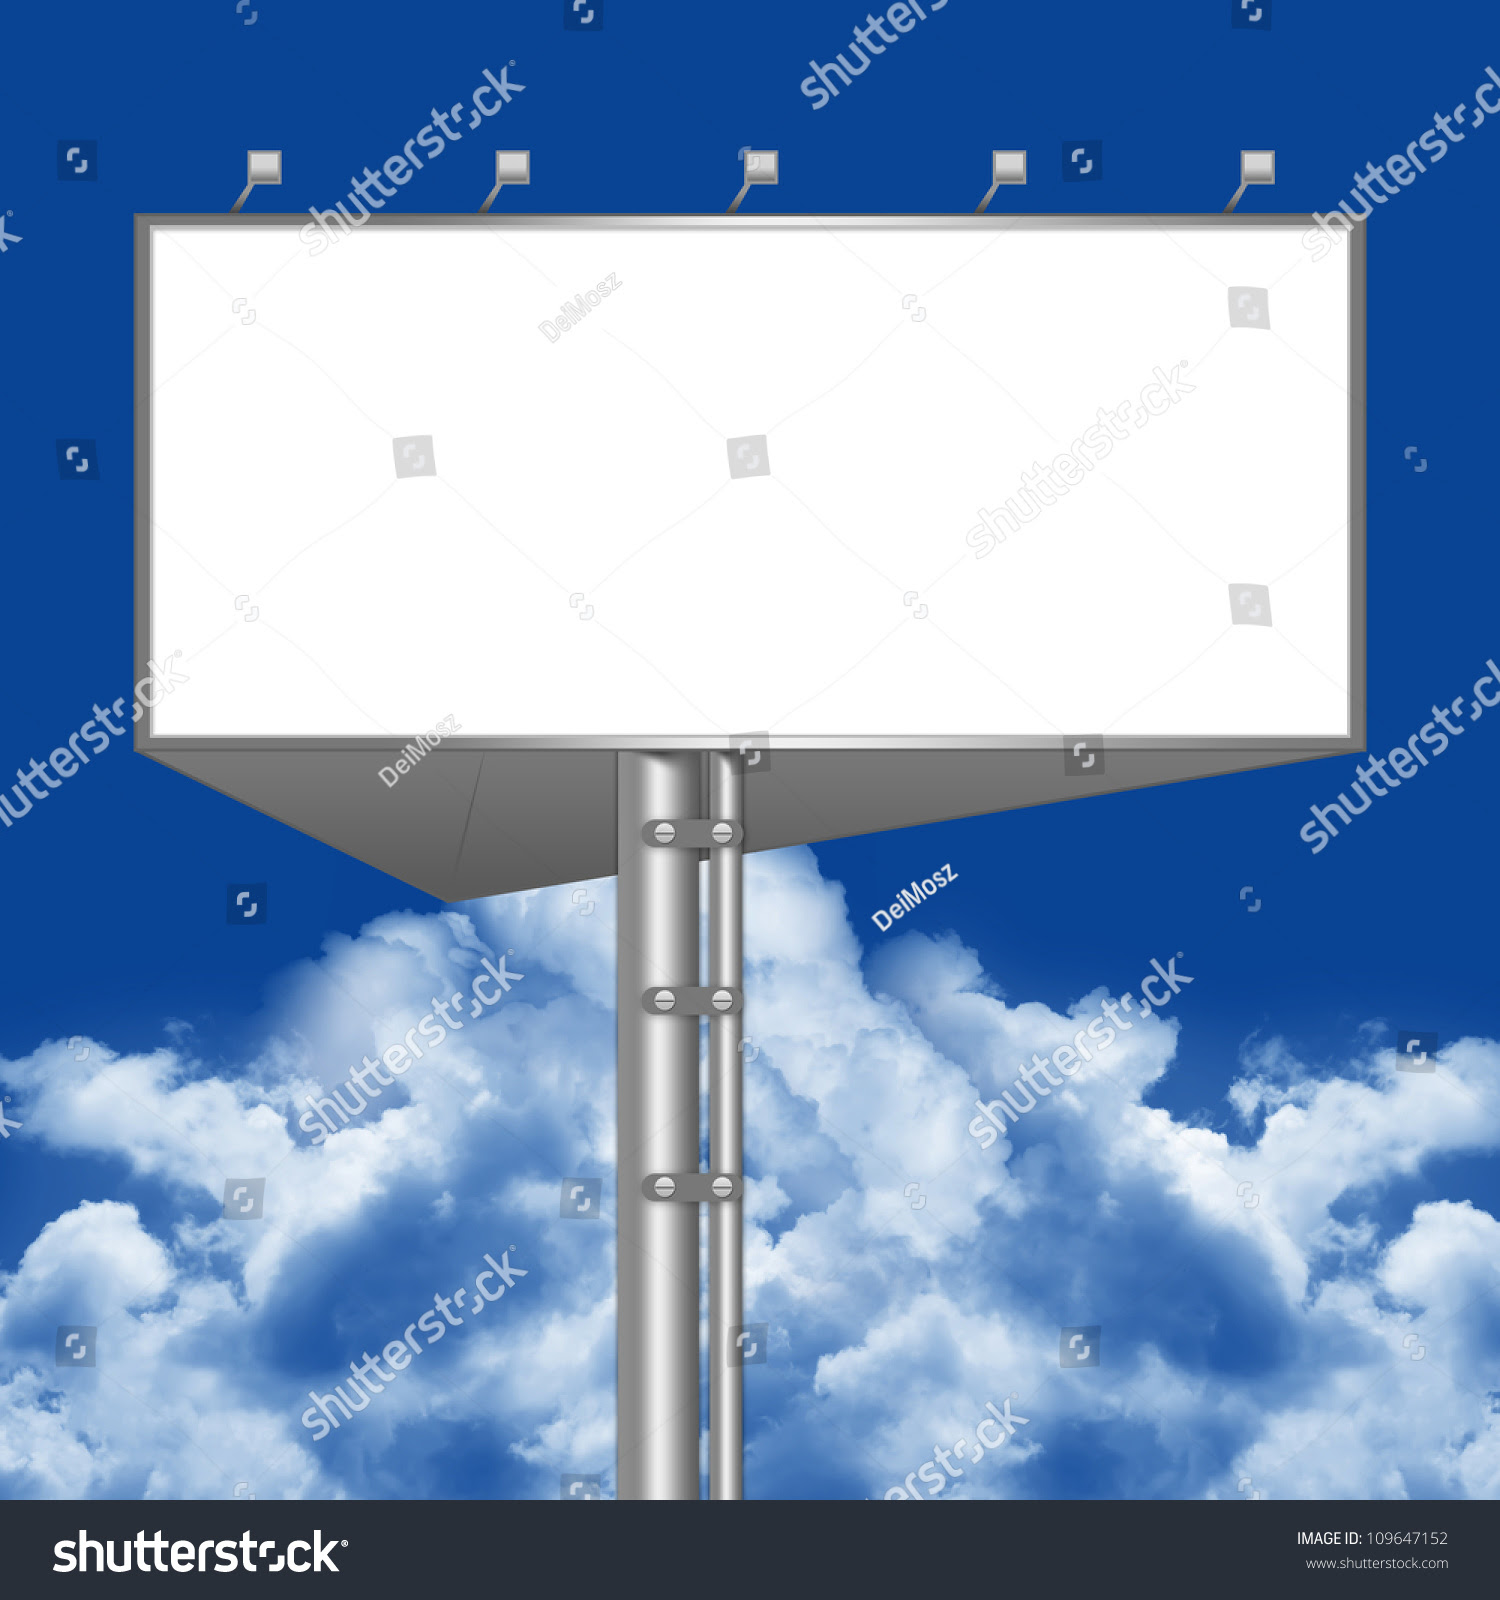 Blank Billboard Template With White Screen For Your Own Text ...